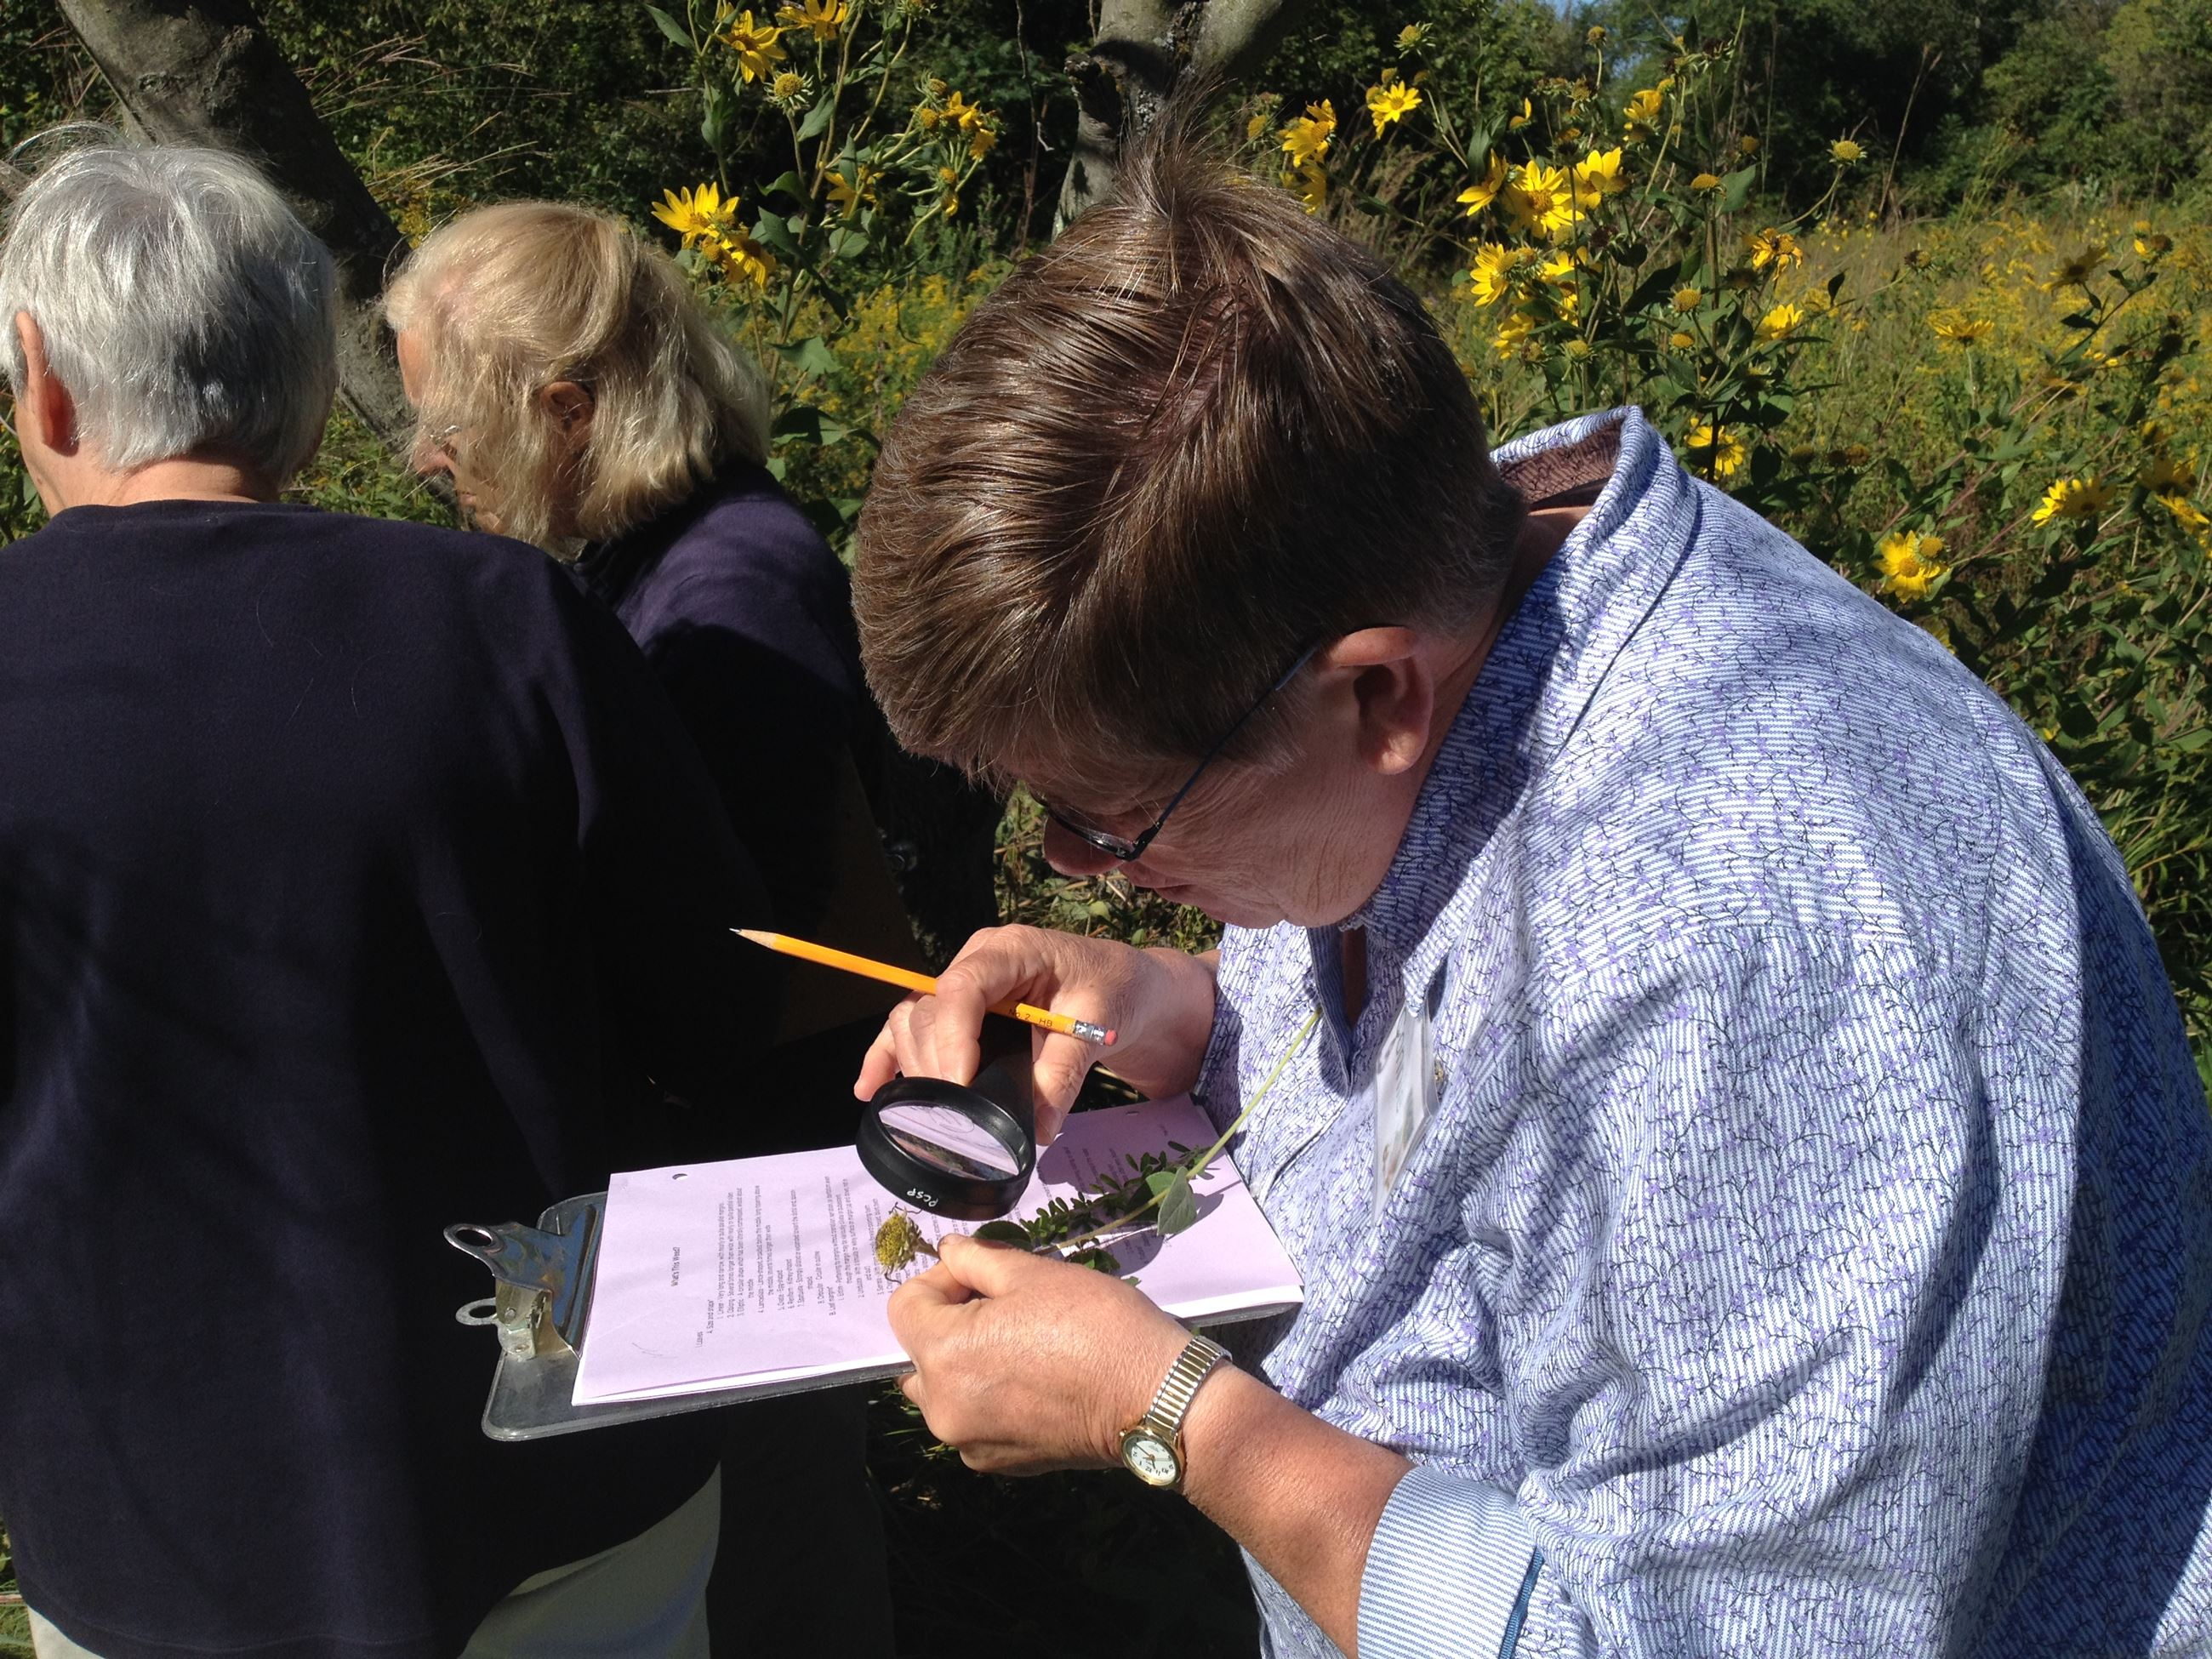 investigating plants at a master naturalist class